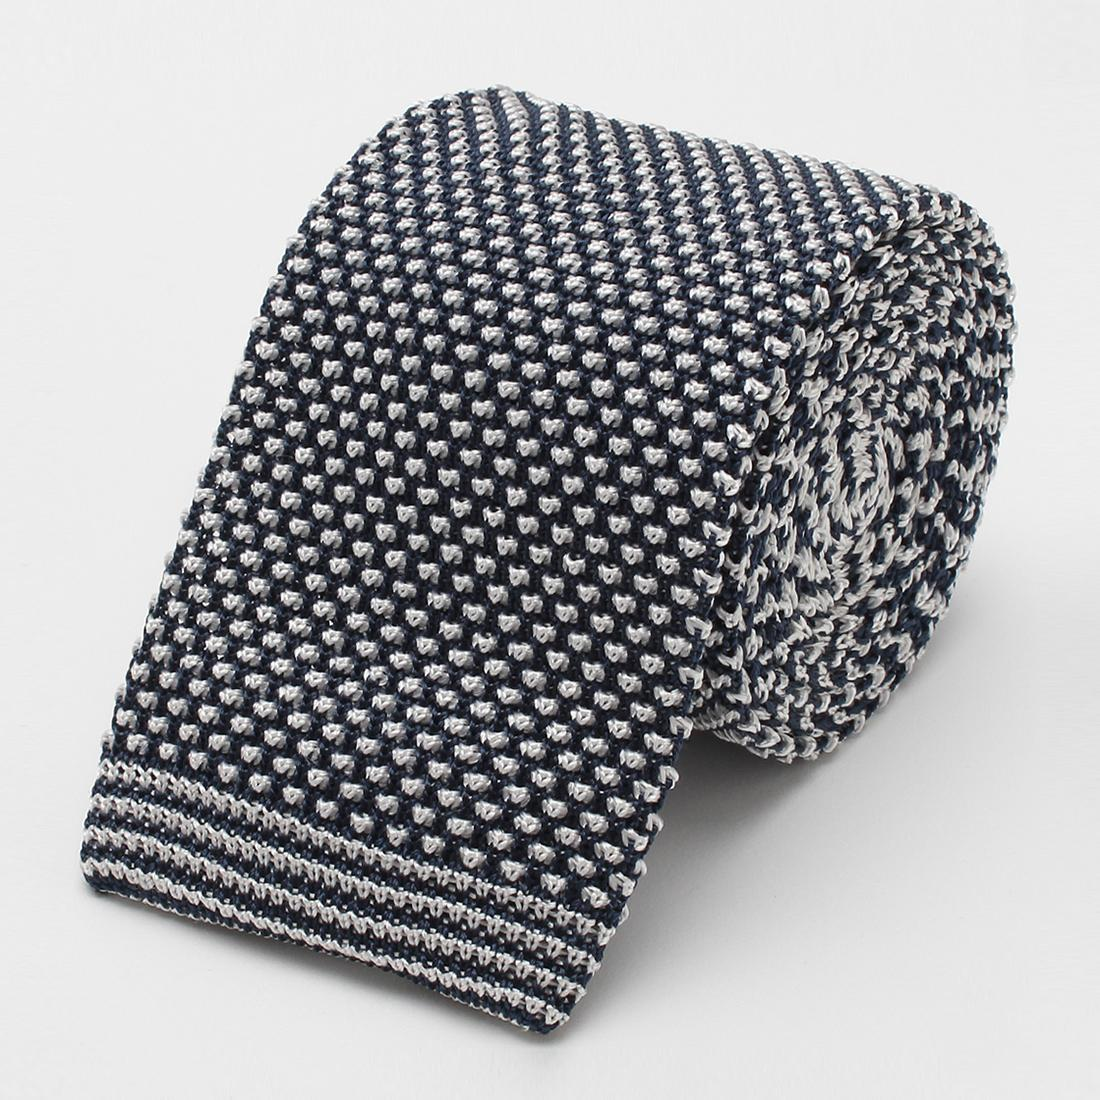 Barneys New York Silk Pattern Knit Tie 2004632: Navy